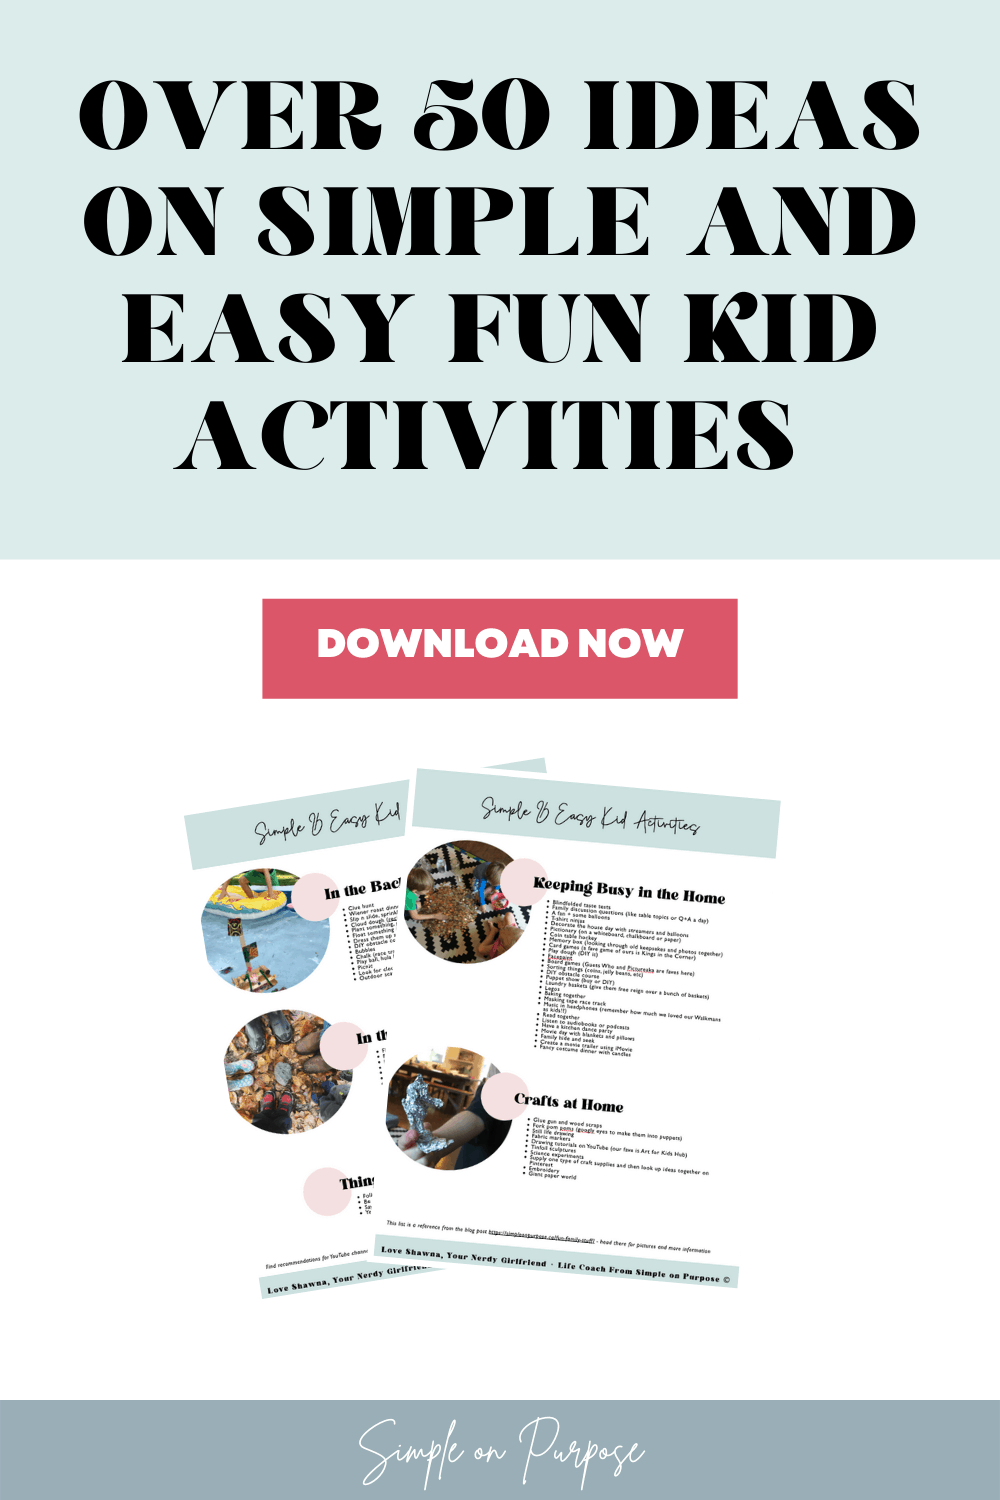 over 50 ideas to keep kids busy